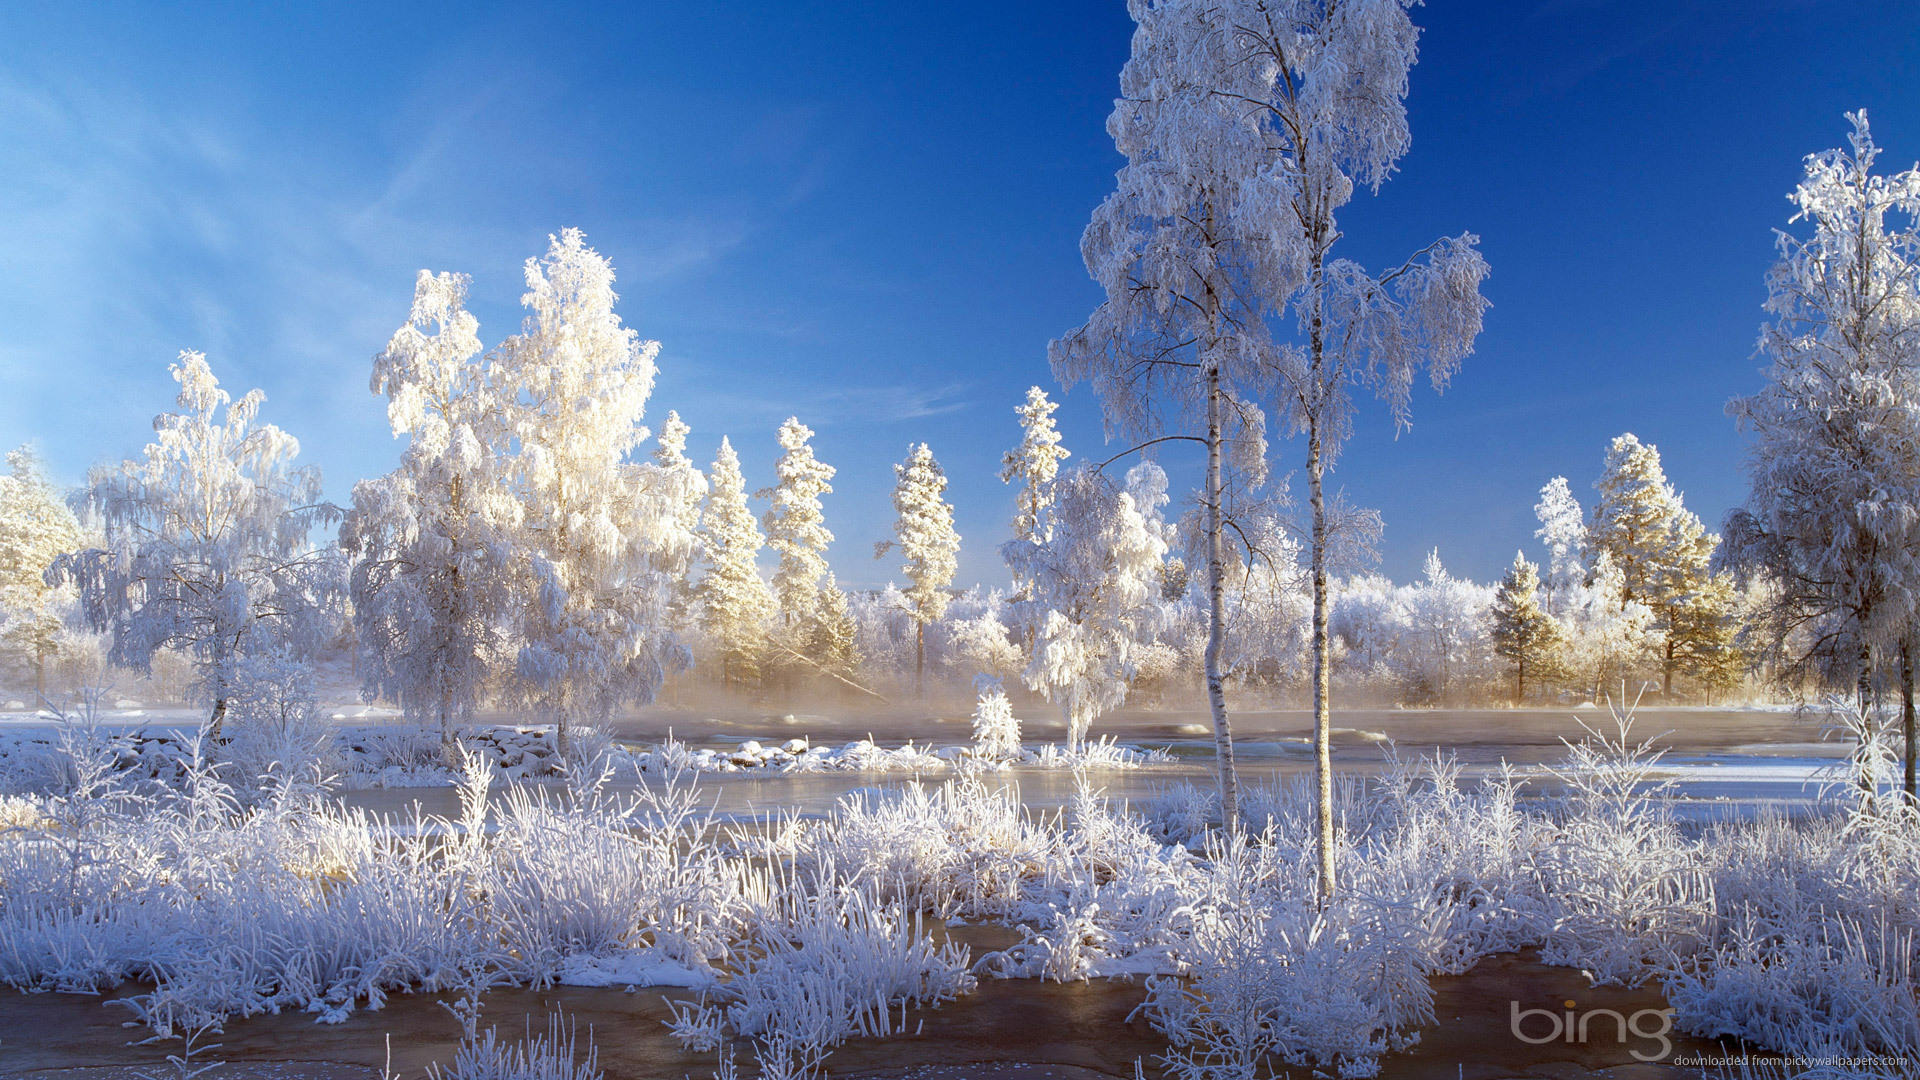 Bing Winter Landscape Picture For iPhone Blackberry iPad Bing 1920x1080